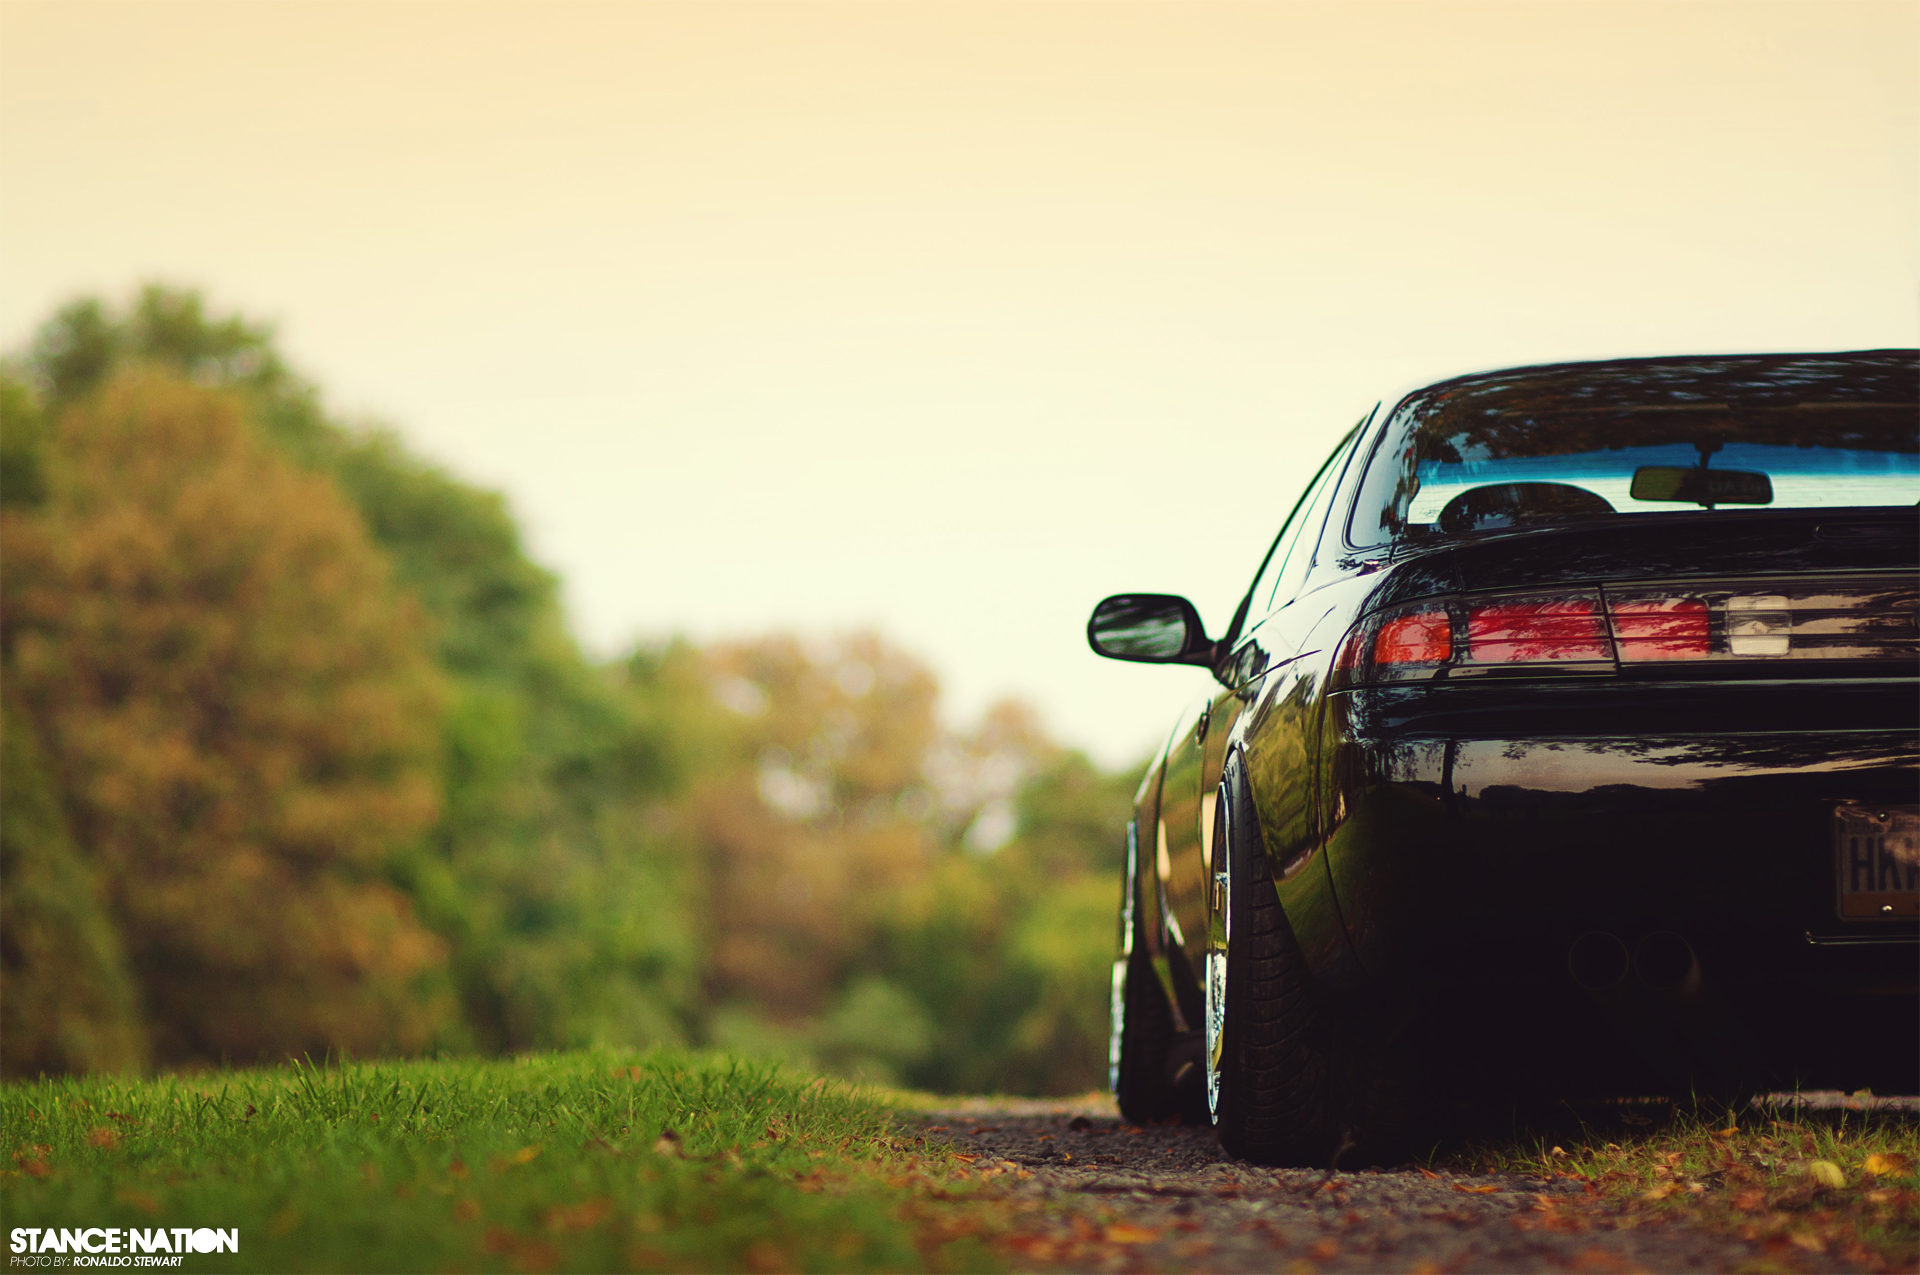 Photos By Ronaldo Stewart Exclusively For Stancenation